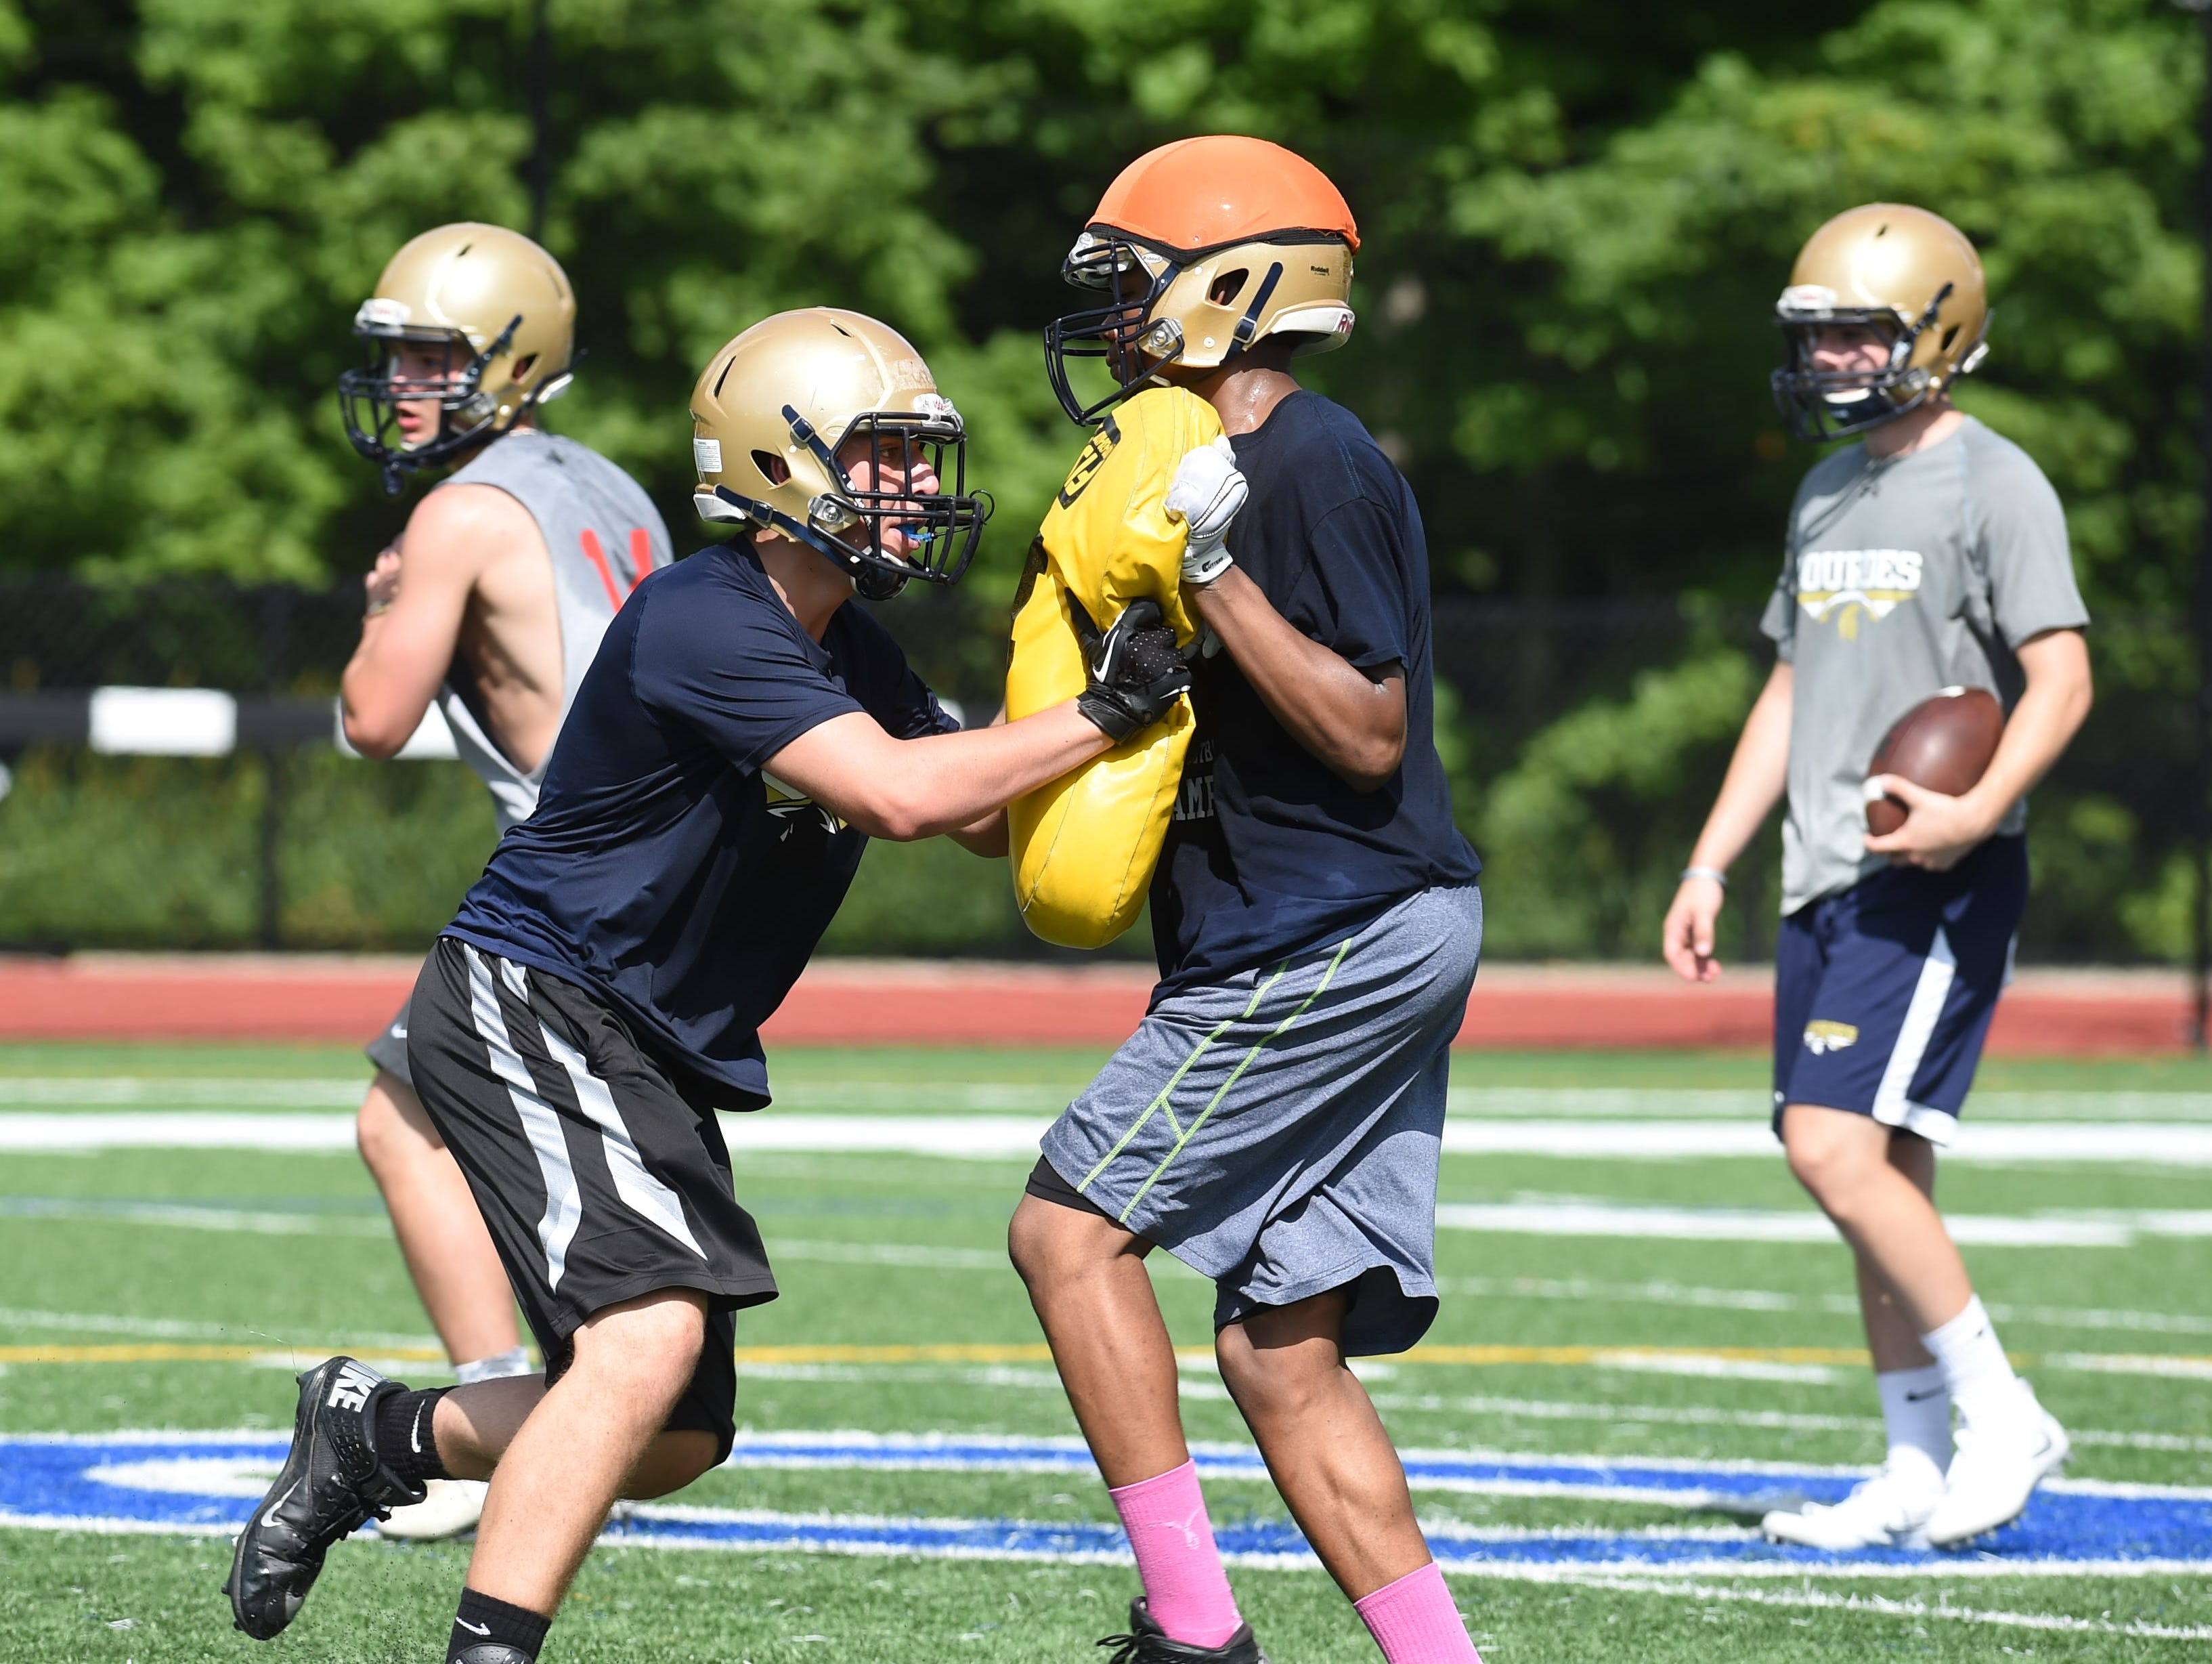 Juniors Sean McDowell, left, and Malik Wright, right, at Our Lady of Lourdes High School grapple during preseason football practice.